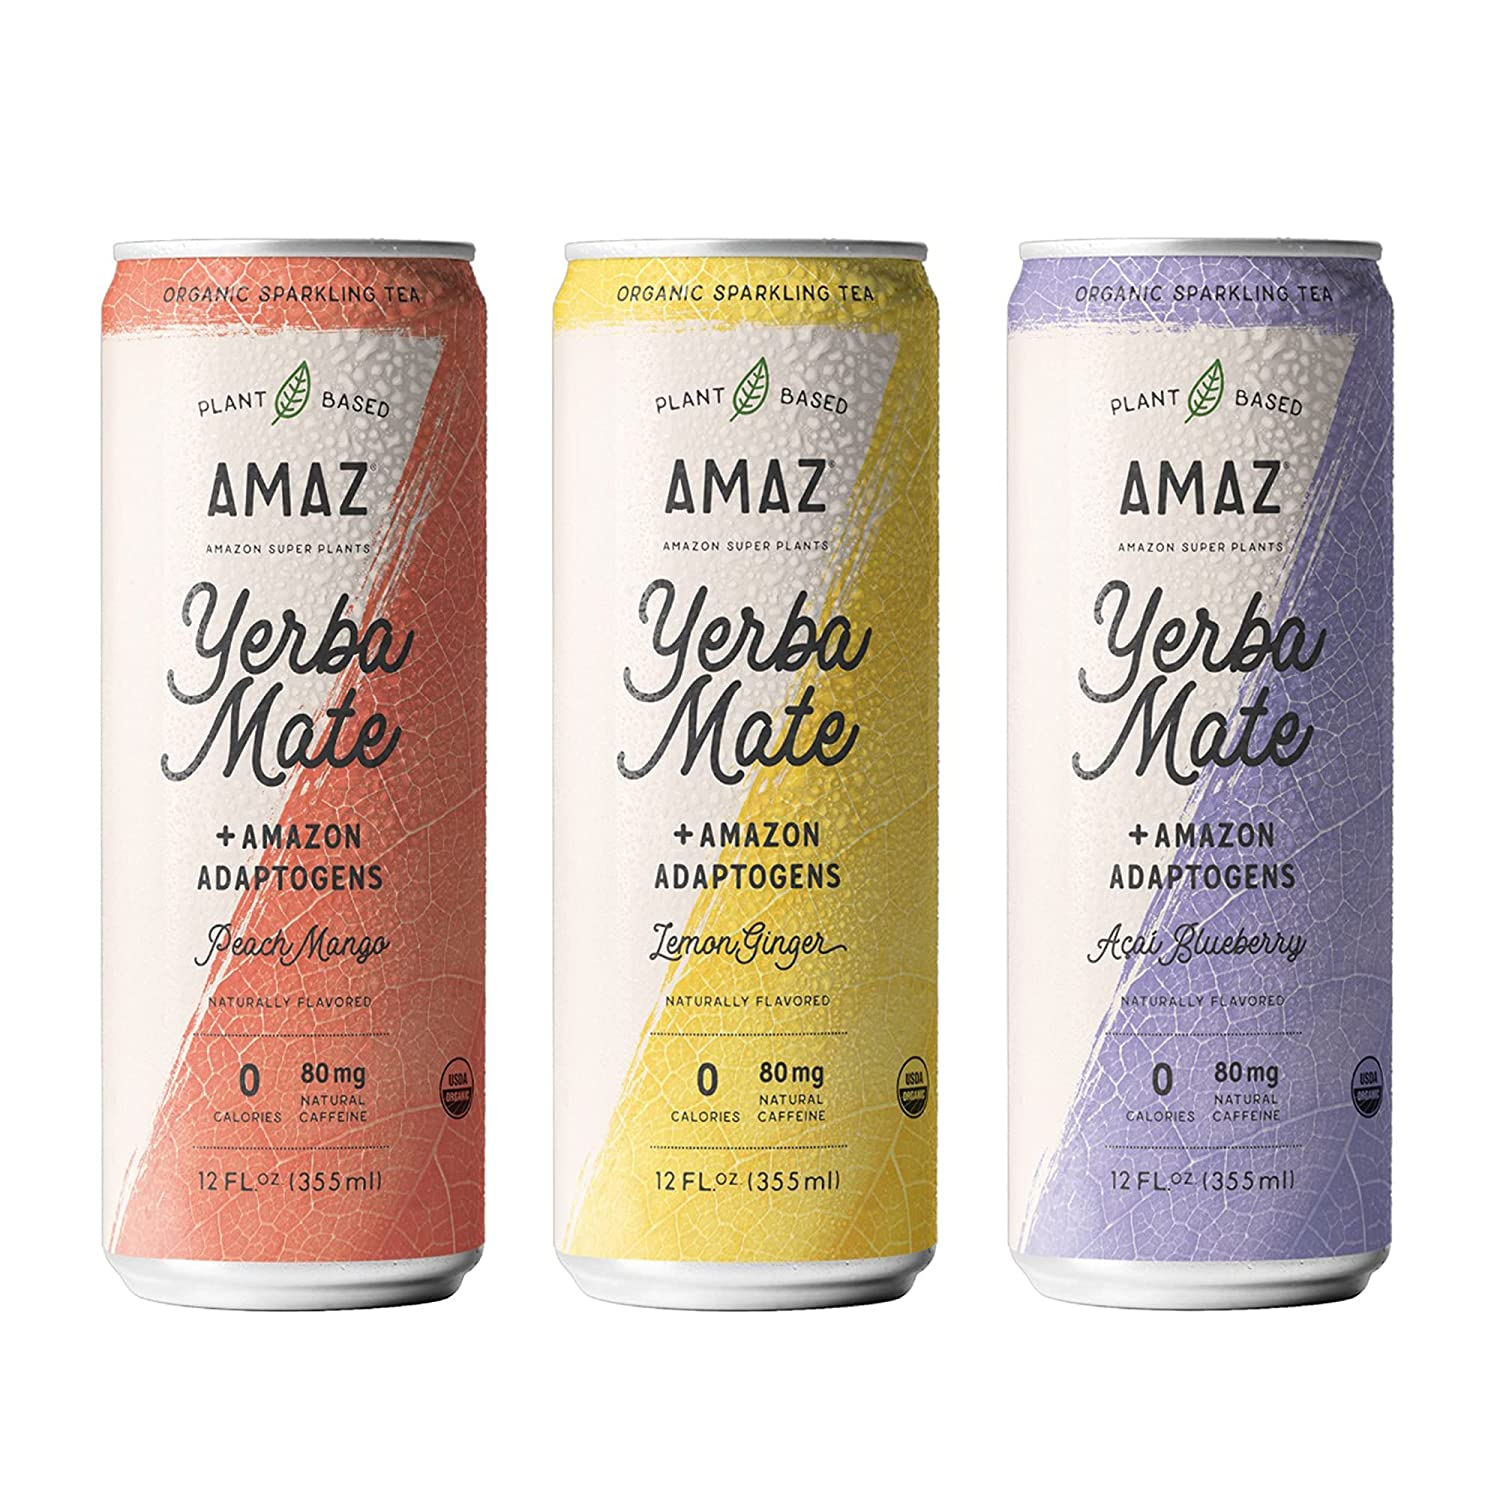 AMAZ Organic Sparkling Yerba Mate Tea with Adaptogens for Natural Energy, Focus, & Immunity   Plant-based   Zero Calories   Zero Sugar   Vegan   Keto Friendly   80mg Organic Caffeine   Sustainably Sourced from Regenerative Agroforestry (Pack of 6)